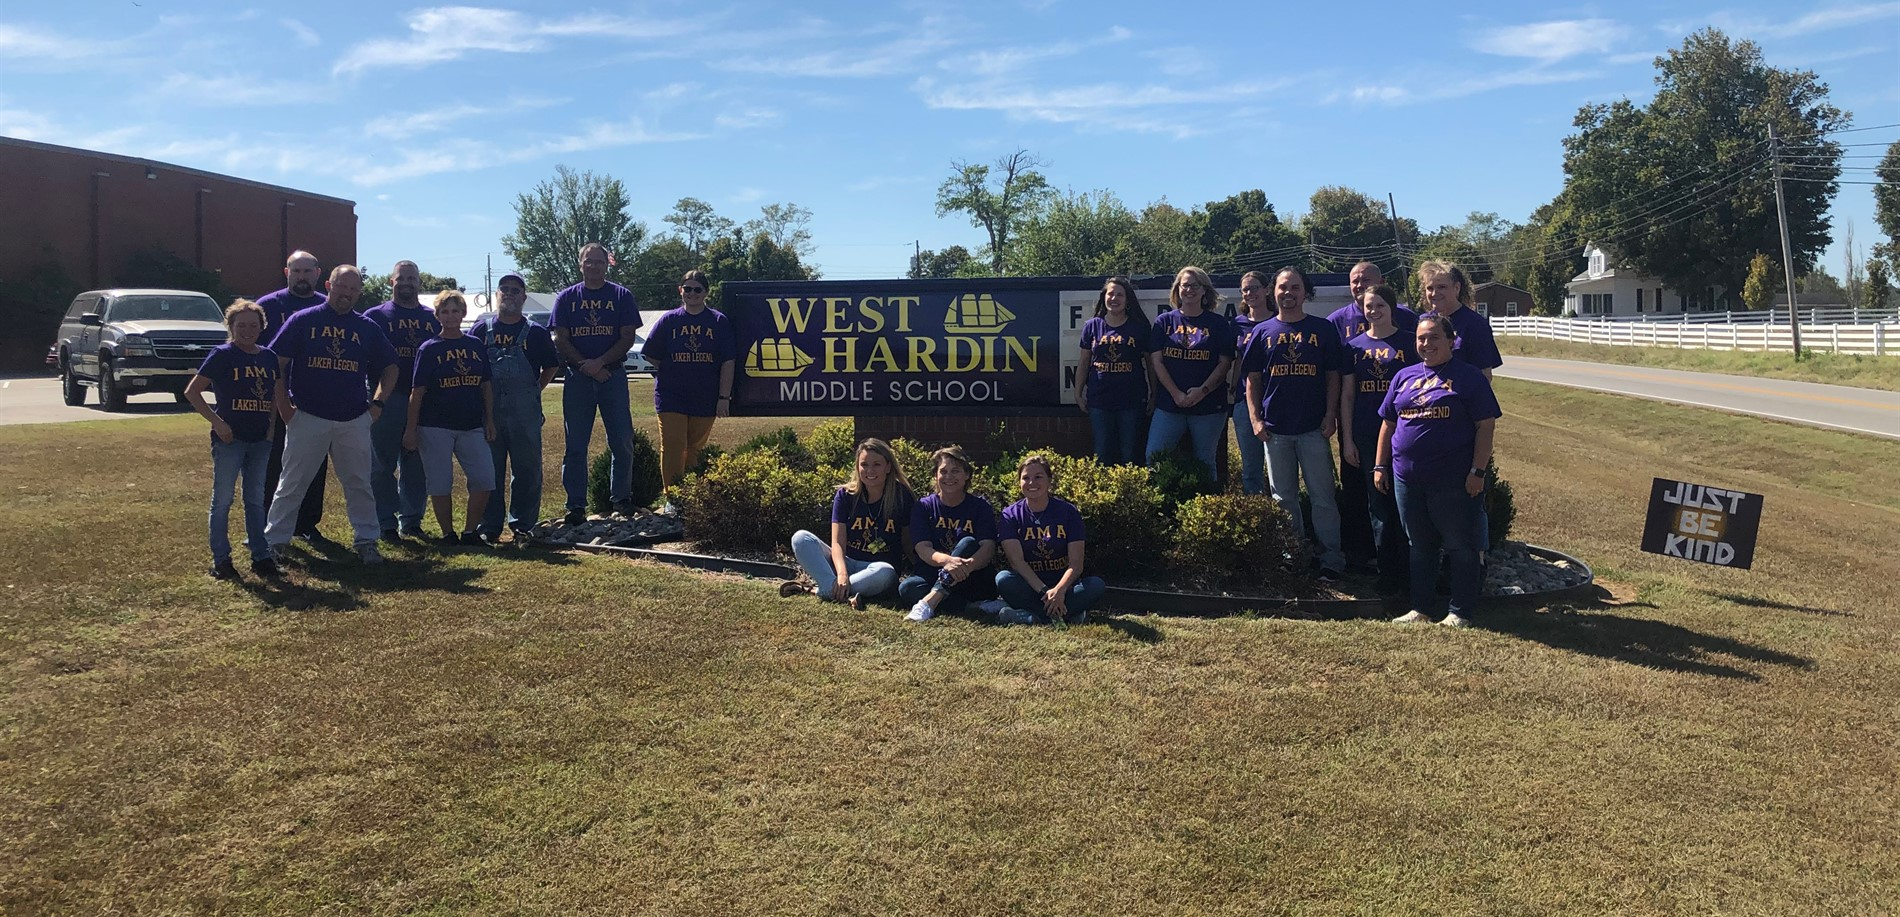 Current WHMS Teachers & Staff Members Who Also Attended West Hardin as Students!